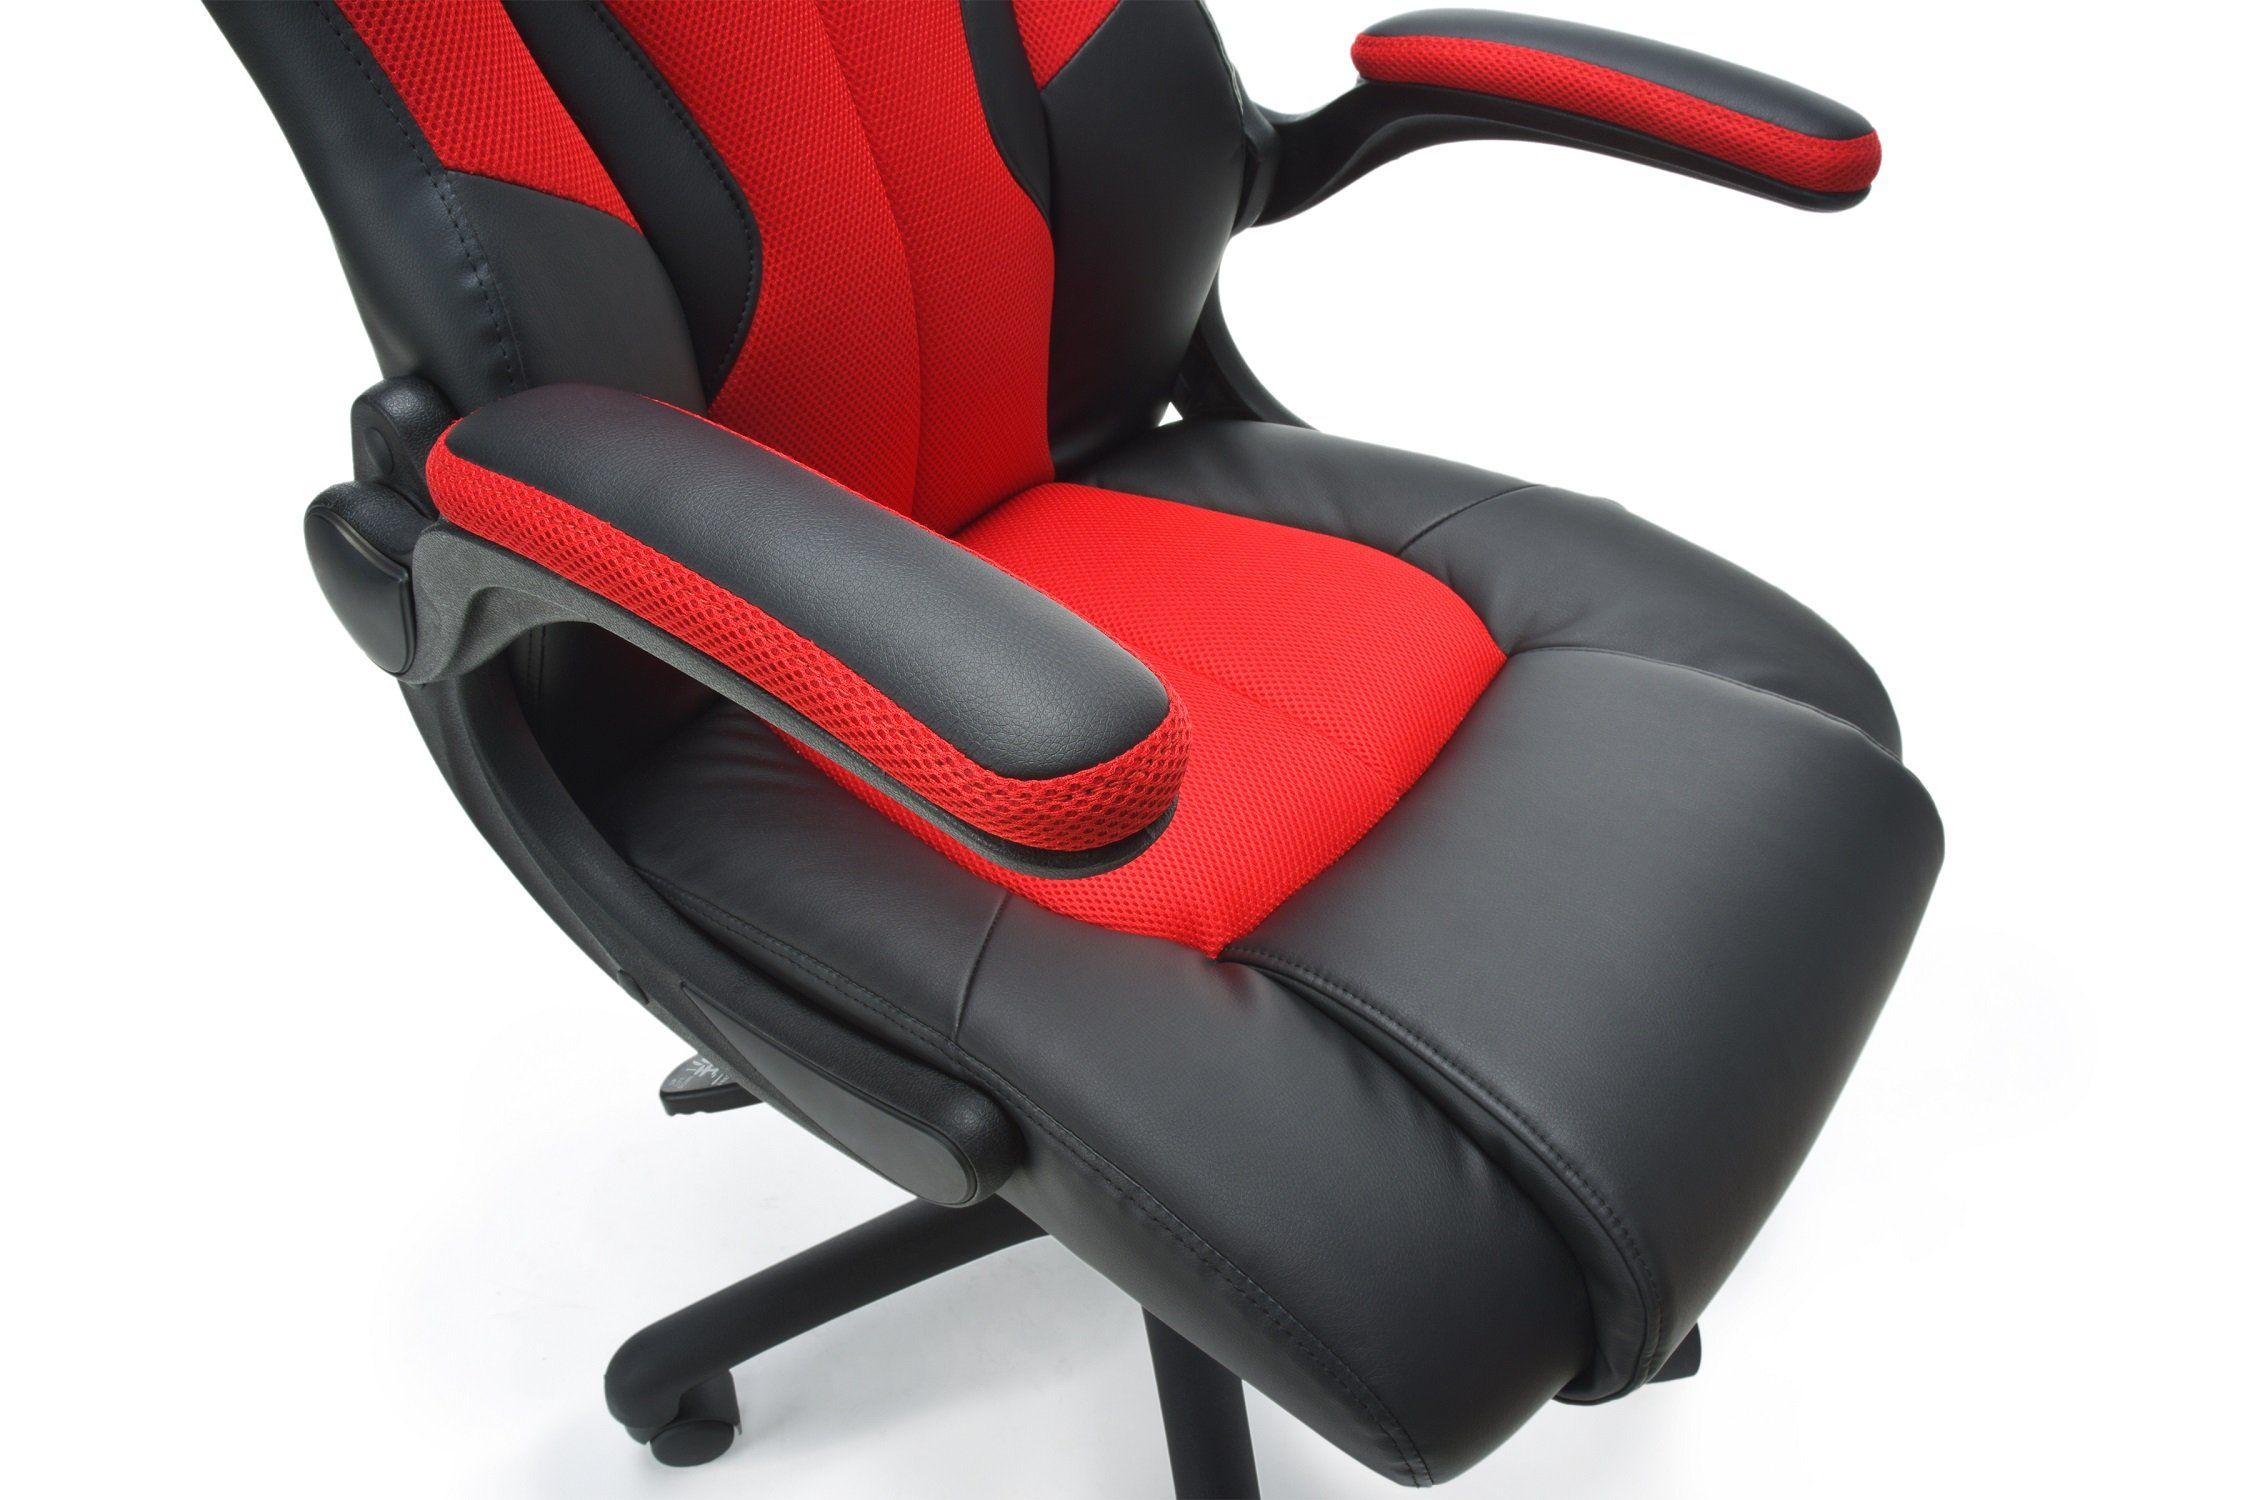 Essentials Racing Style Leather Gaming Chair Ergonomic Swivel Computer Office Or Gaming Chair Red Ess3086red Check Out The Image Chair Bonded Leather Ofm